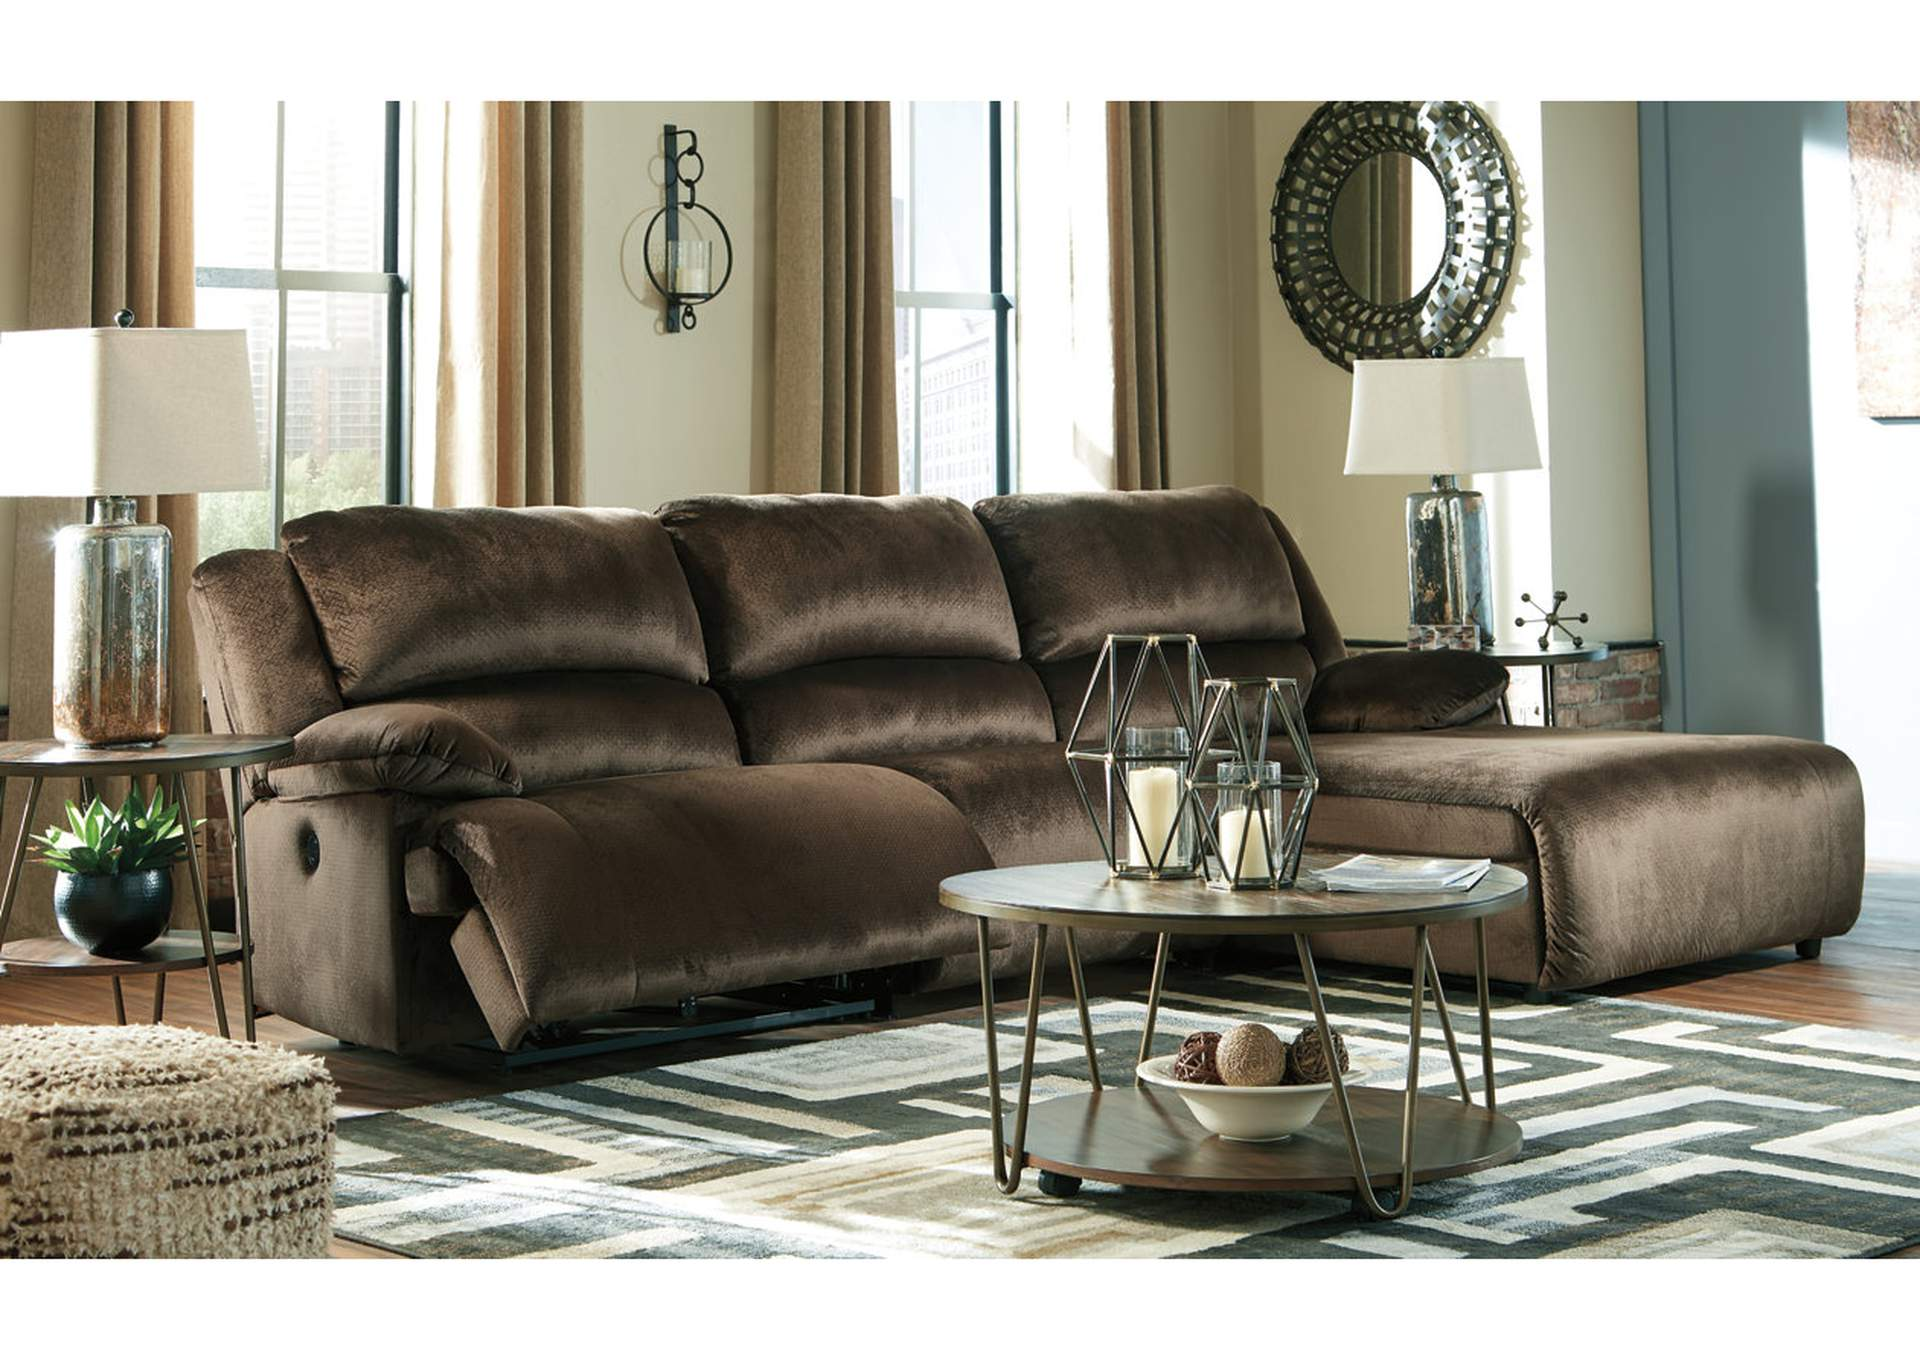 Clonmel 3 Piece Power Reclining Sectional with Chaise,Signature Design By Ashley